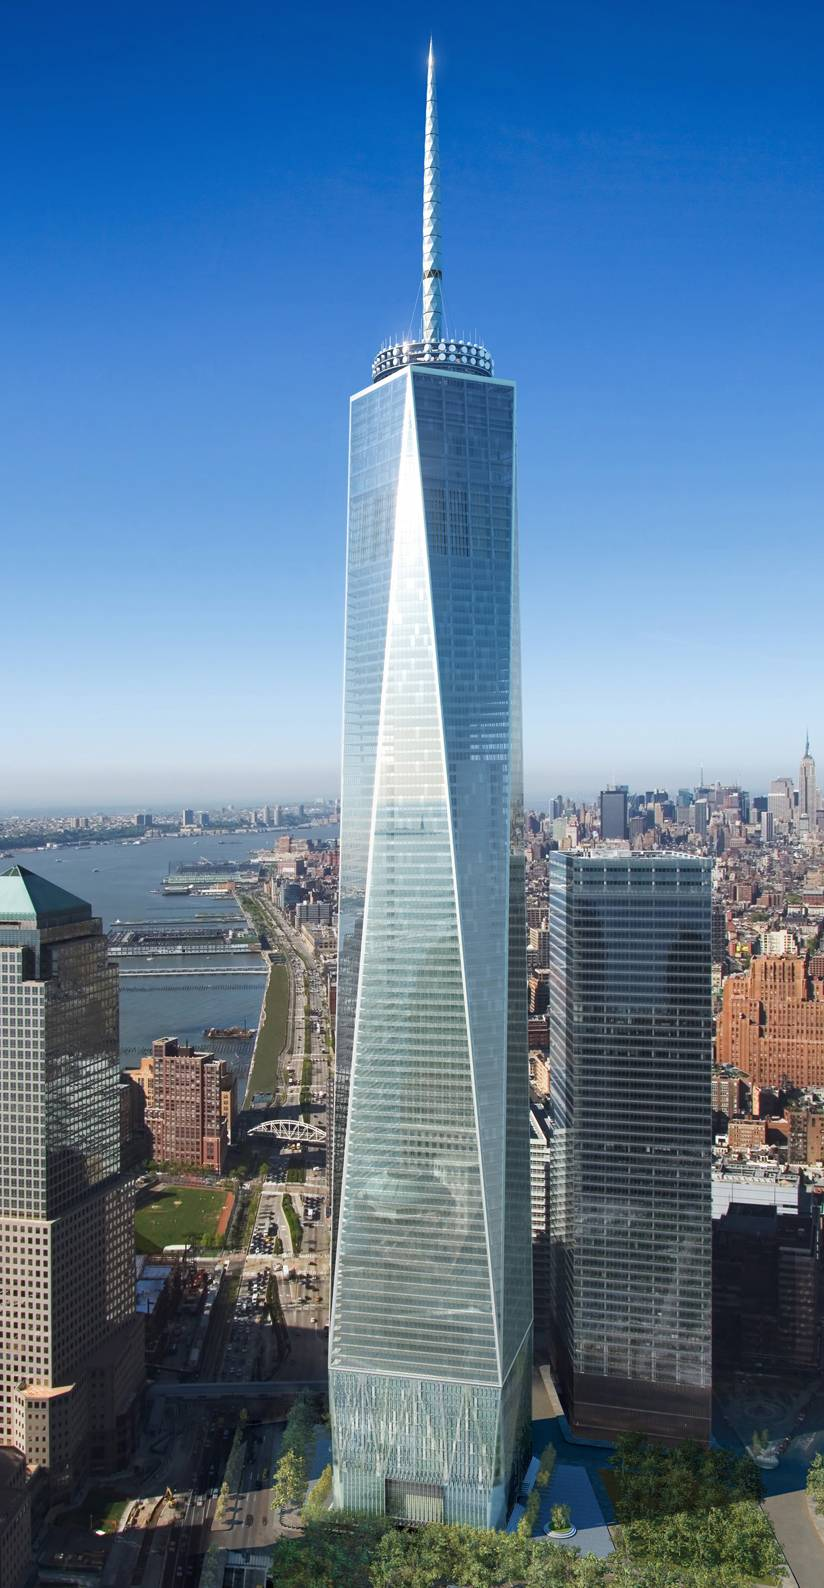 http://vizts.com/wp-content/uploads/2016/04/one-world-trade-center-or-freedom-tower.jpg